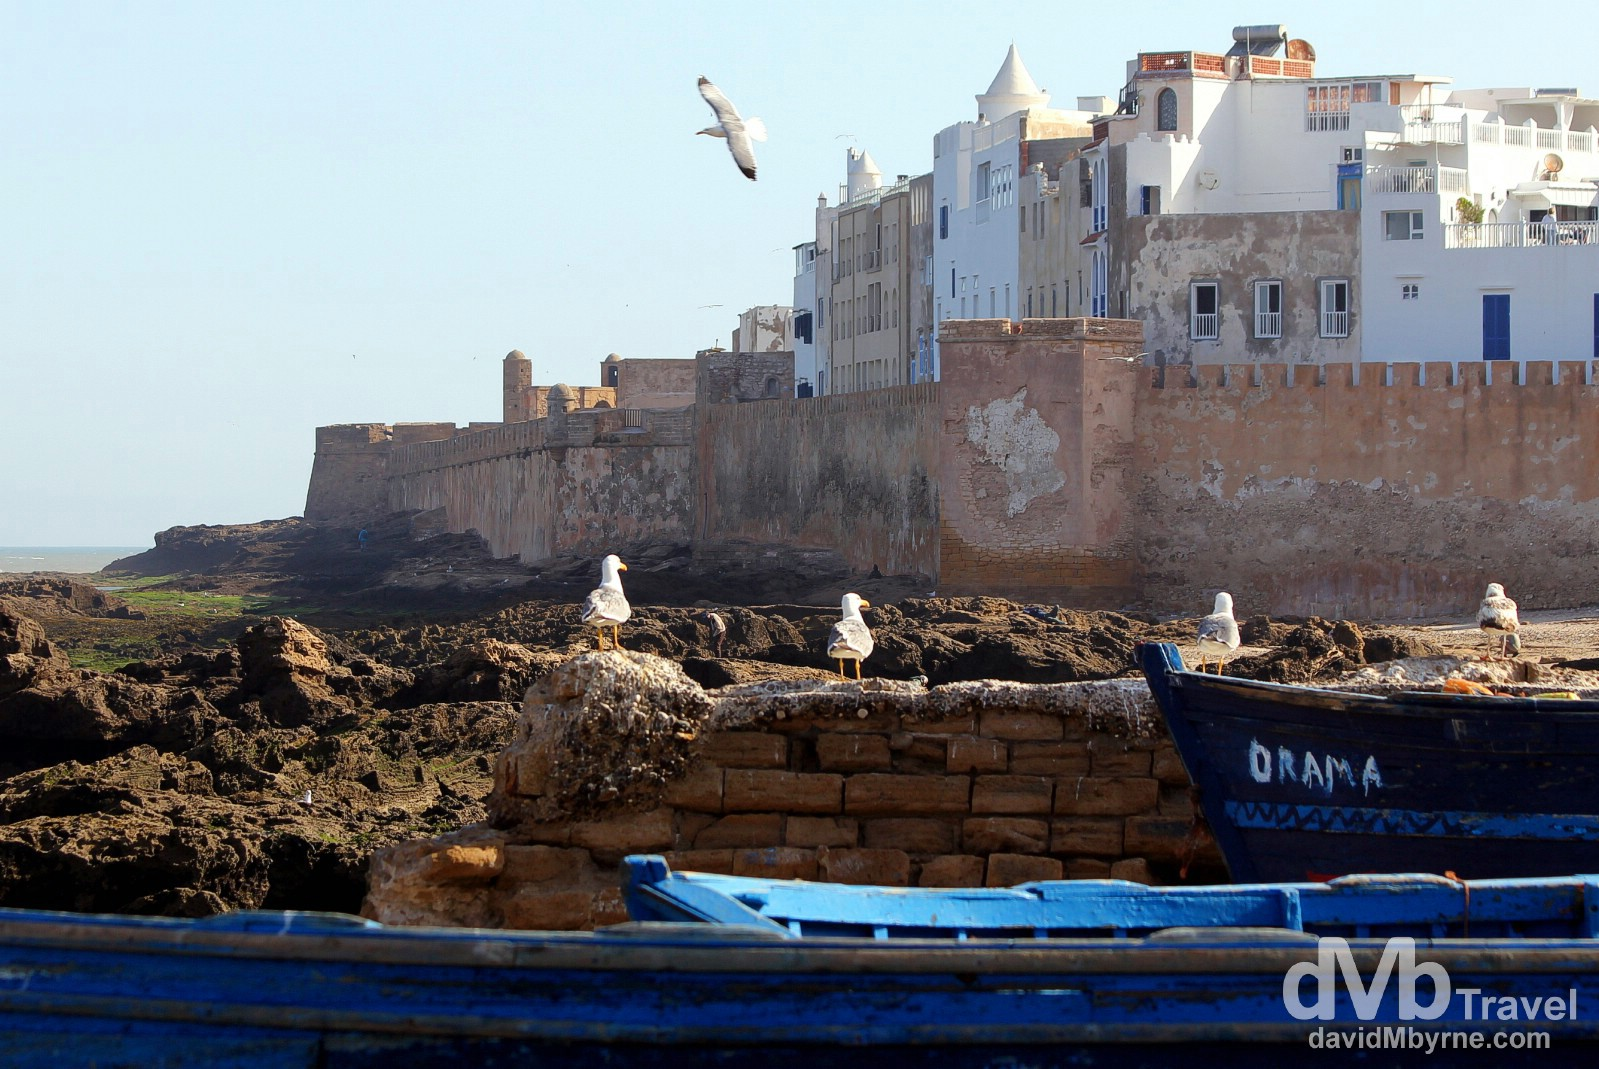 The Atlantic-fronting walls of the medina as seen from the port in Essaouira, Morocco. May 3rd, 2014.